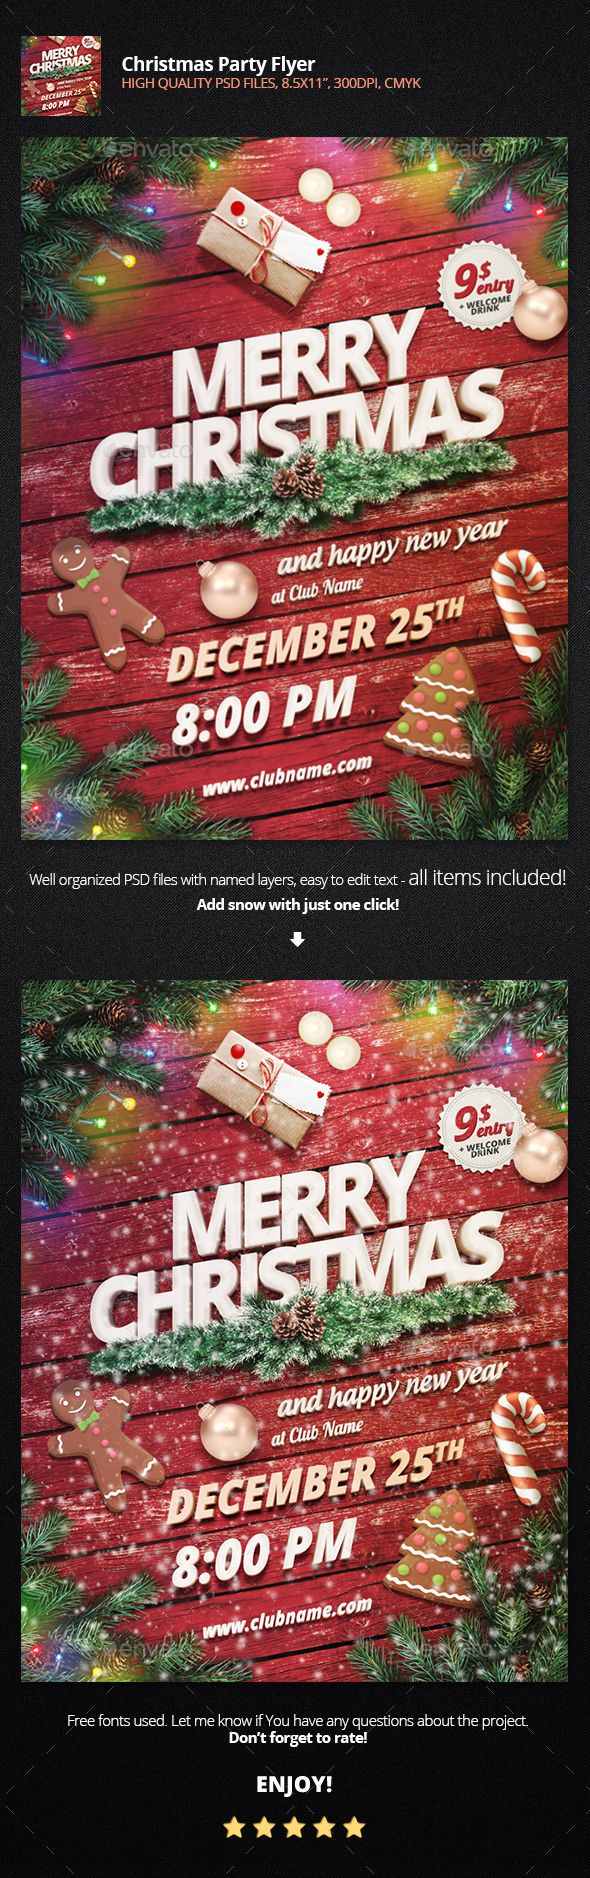 Christmas Party Flyer Template PSD #design #xmas Download: http://graphicriver.net/item/christmas-party-flyer/13893008?ref=ksioks